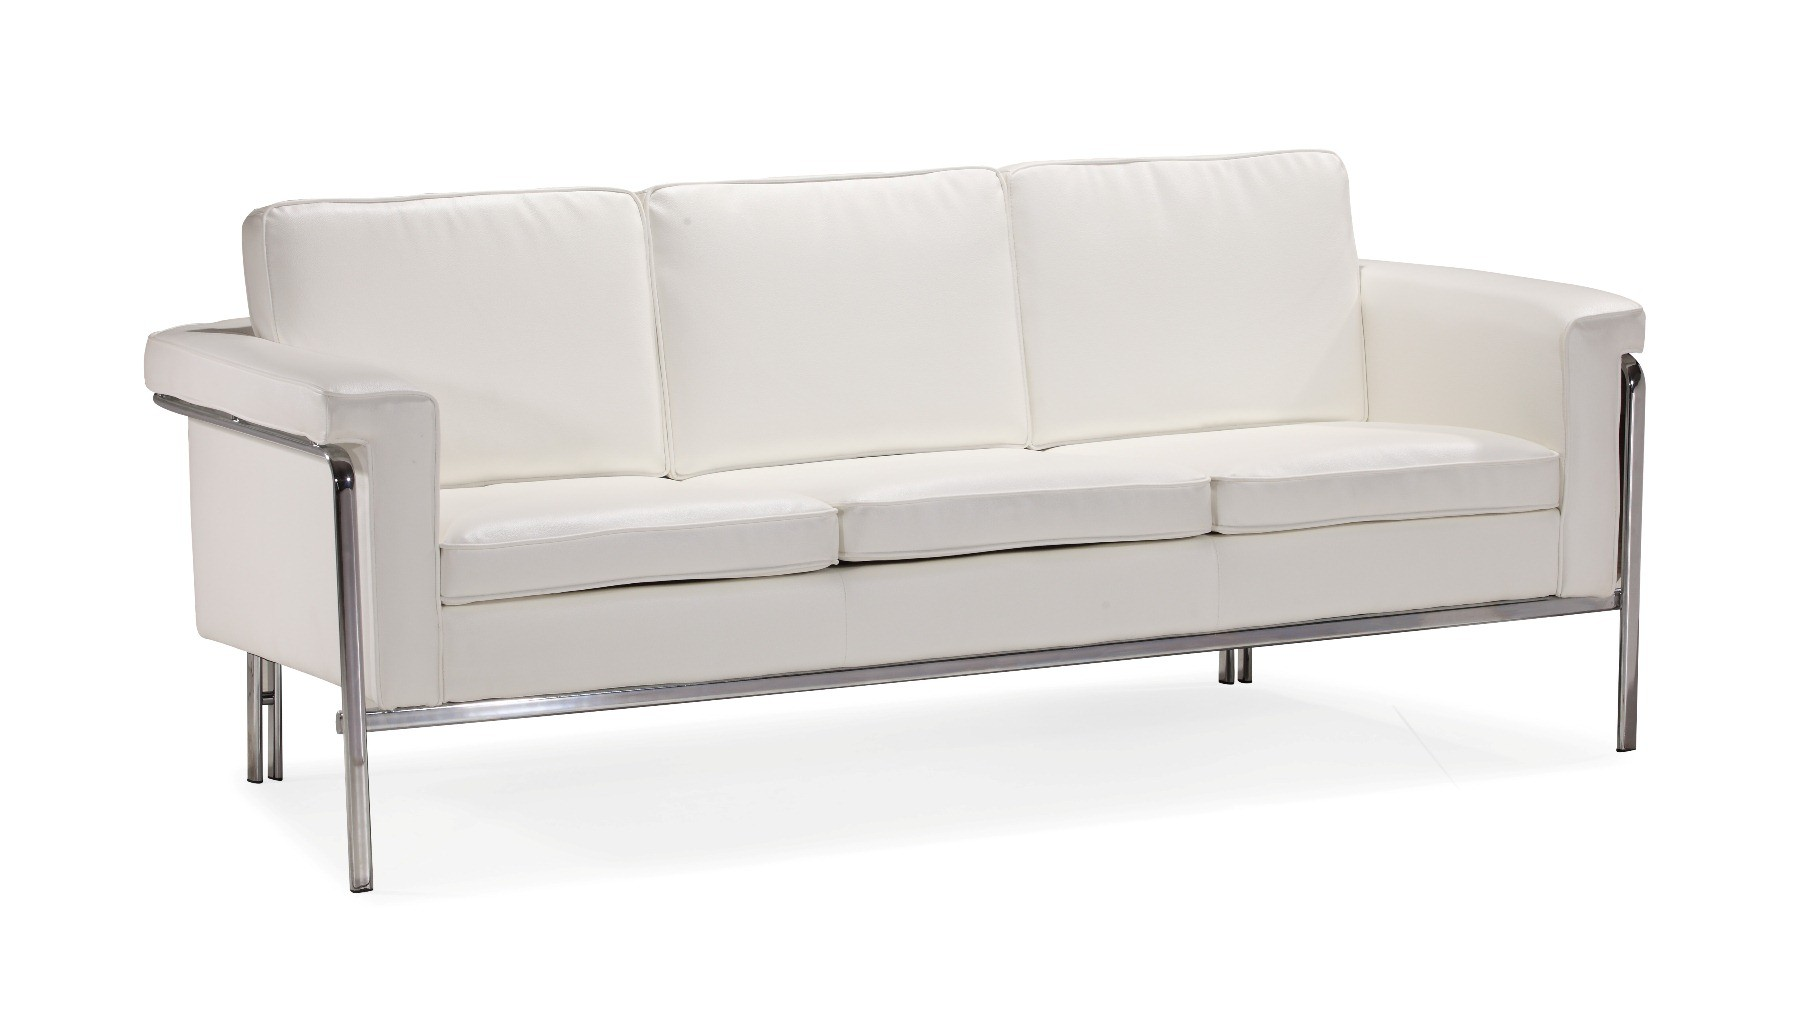 White or black leather contemporary sofa with chrome legs for Modern contemporary sofa